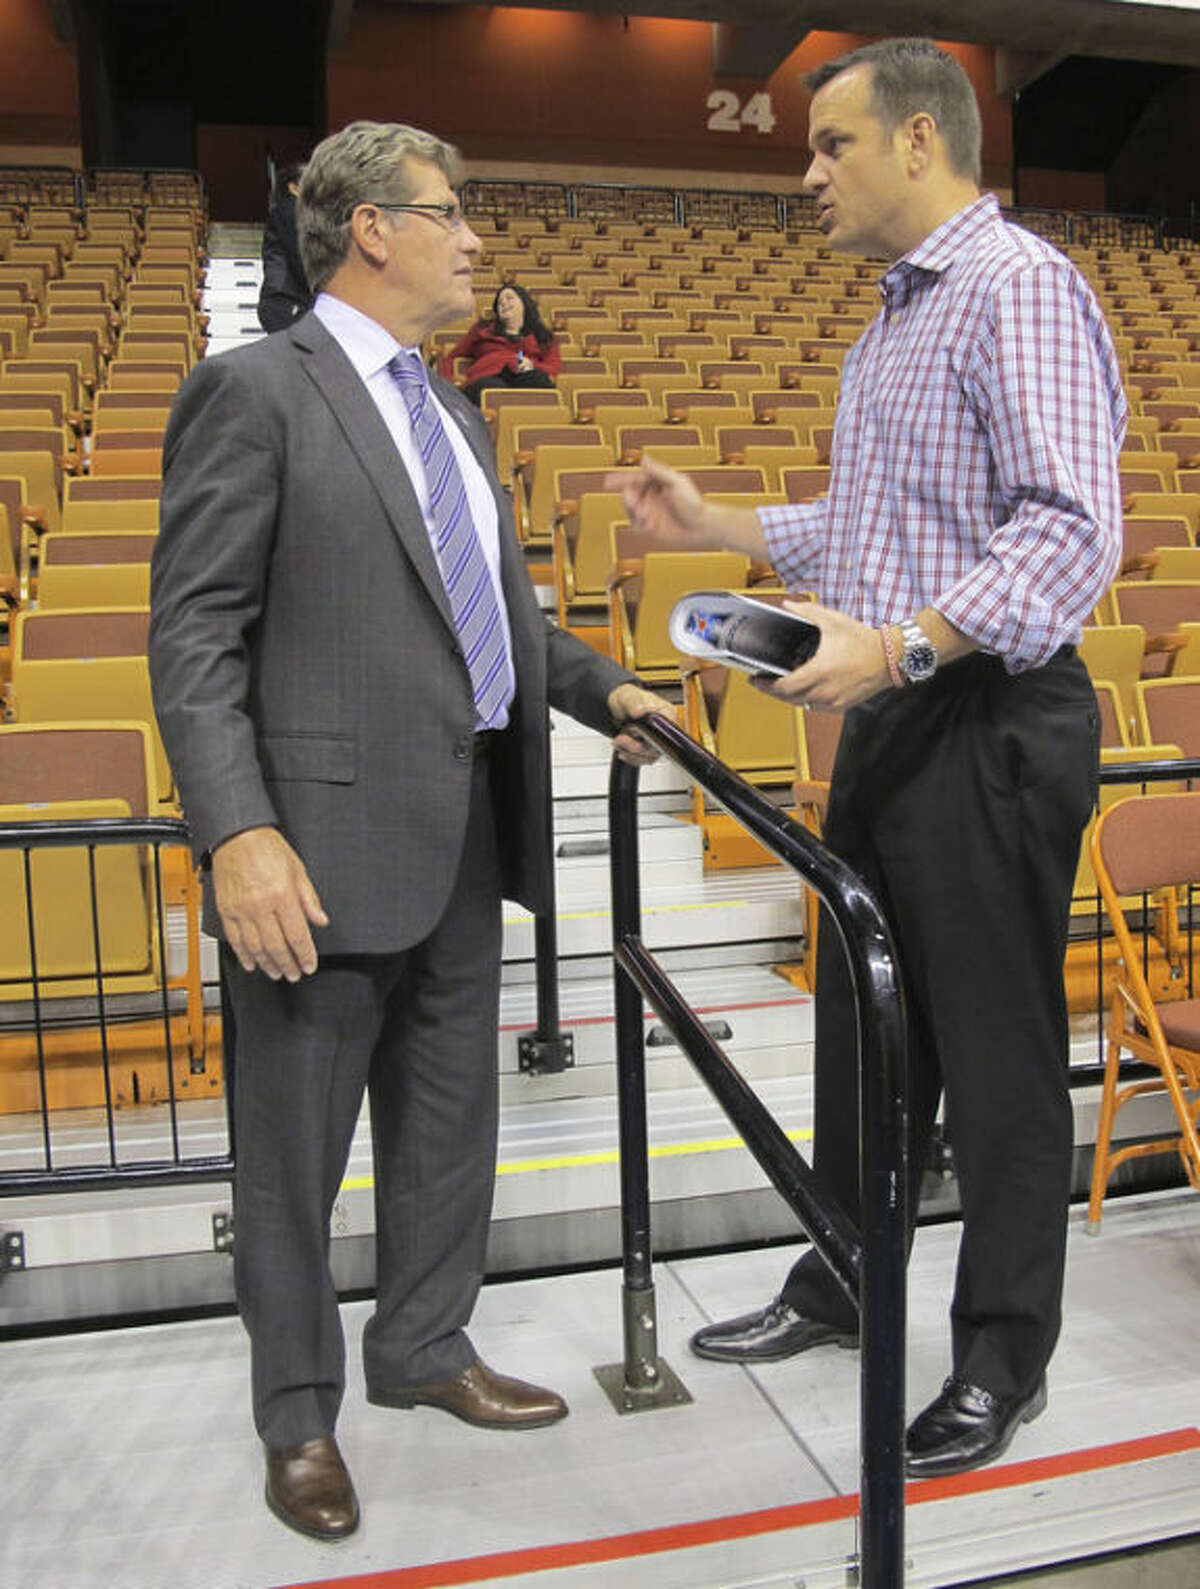 Connecticut women's basketball coach Geno Auriemma, left, and Louisville women's basketball coach Jeff Walz talk during the inaugural women's basketball media day for the American Athletic Conference on Monday Oct. 14, 2014 at the Mohegan Sun Arena in Uncasville, Conn. (AP Photo/Pat Eaton-Robb)